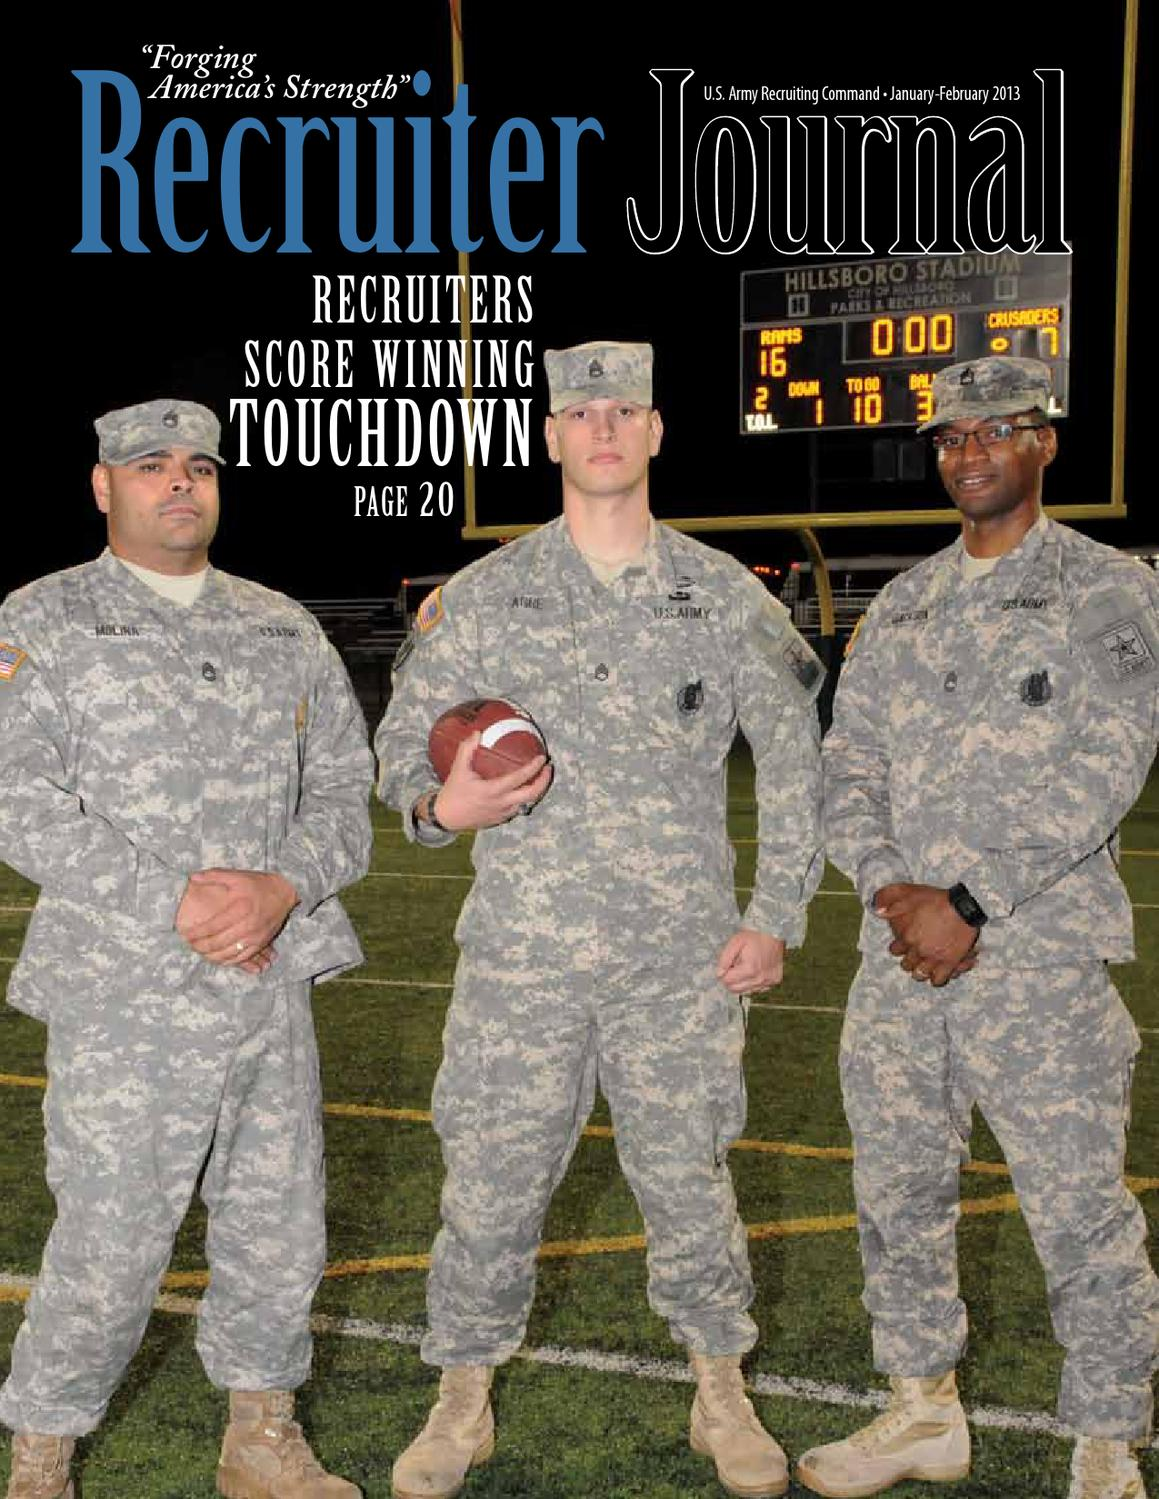 Recruiter journal january february 2013 by us army recruiting recruiter journal january february 2013 by us army recruiting command issuu nvjuhfo Images